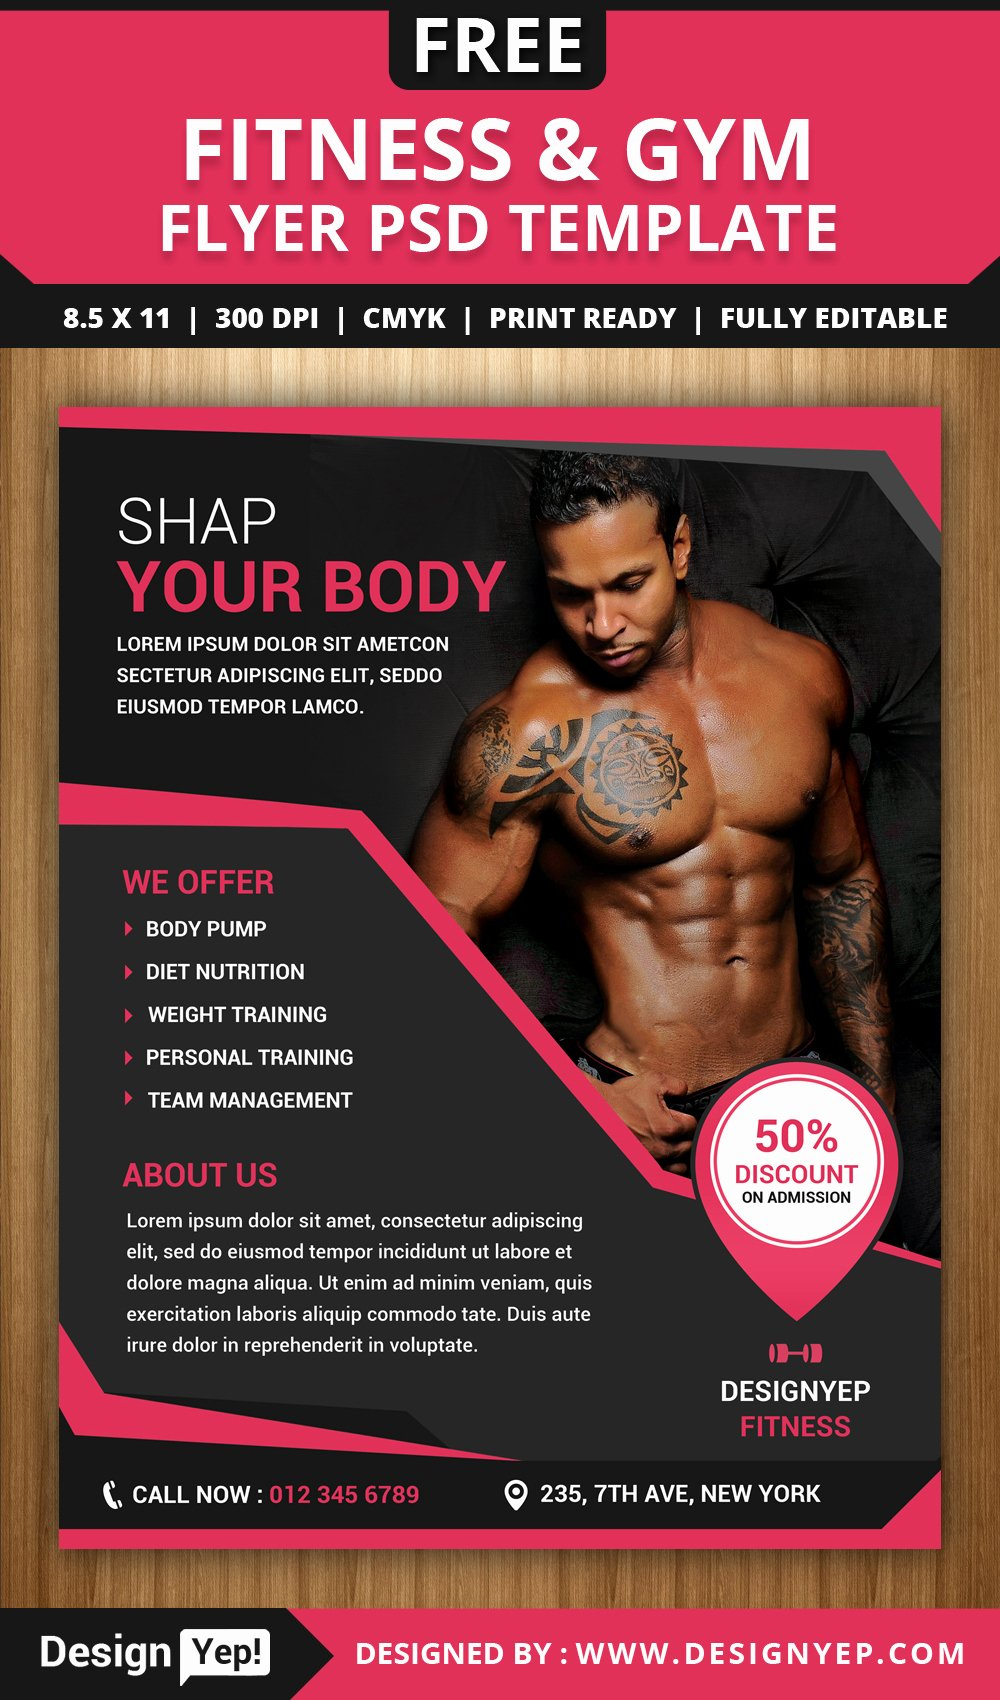 Fitness Flyer Template Free Lovely Free Fitness and Gym Flyer Psd Template Designyep